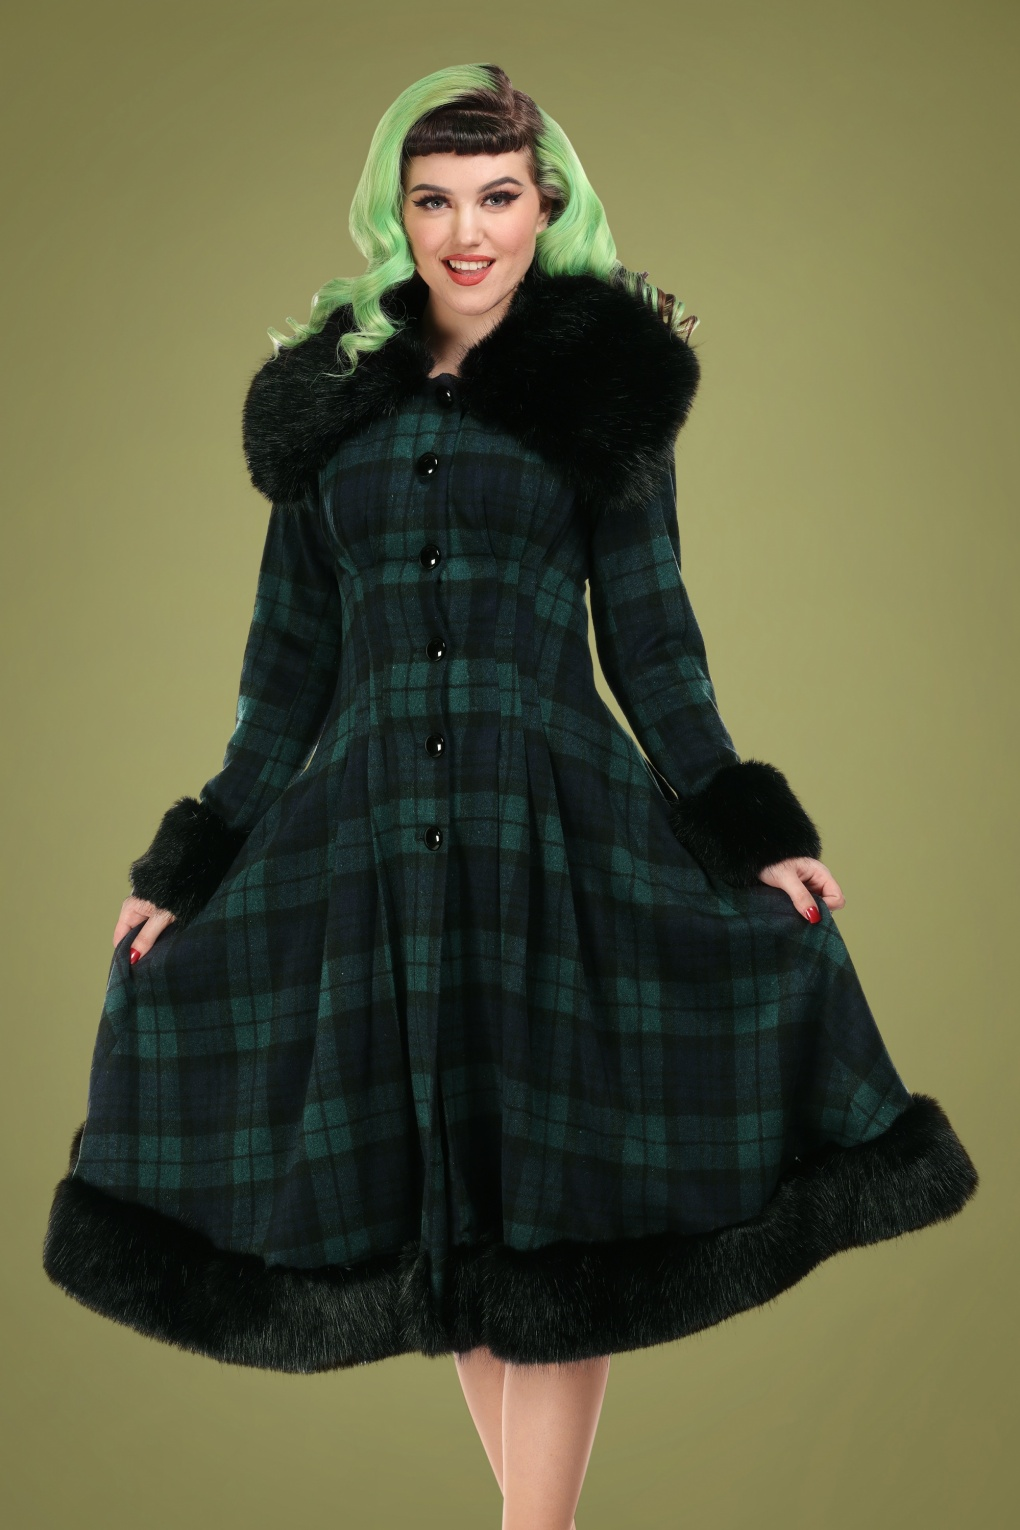 1930s Dresses, Shoes, Lingerie, Clothing UK 30s Pearl Coat in Blackwatch Check £187.13 AT vintagedancer.com